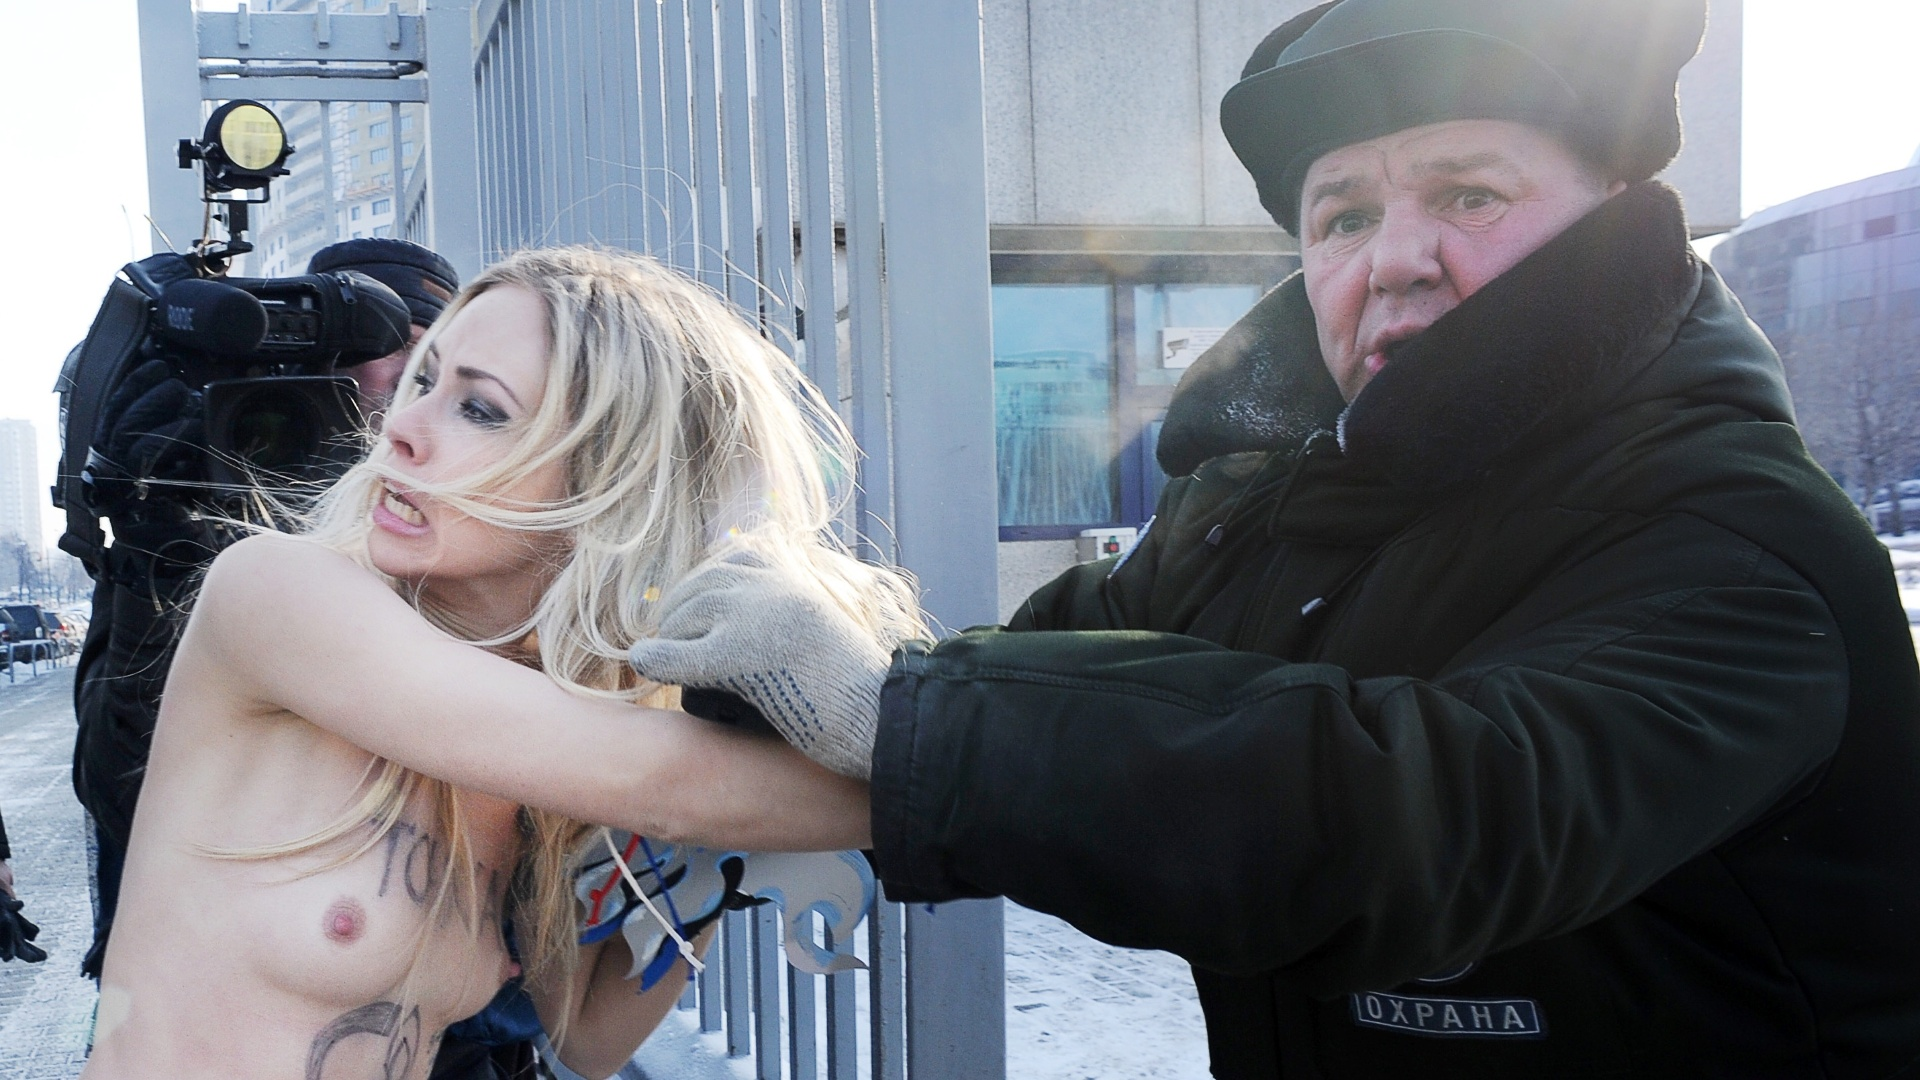 ucranianas do femen protestam na rssia contra preo do gs